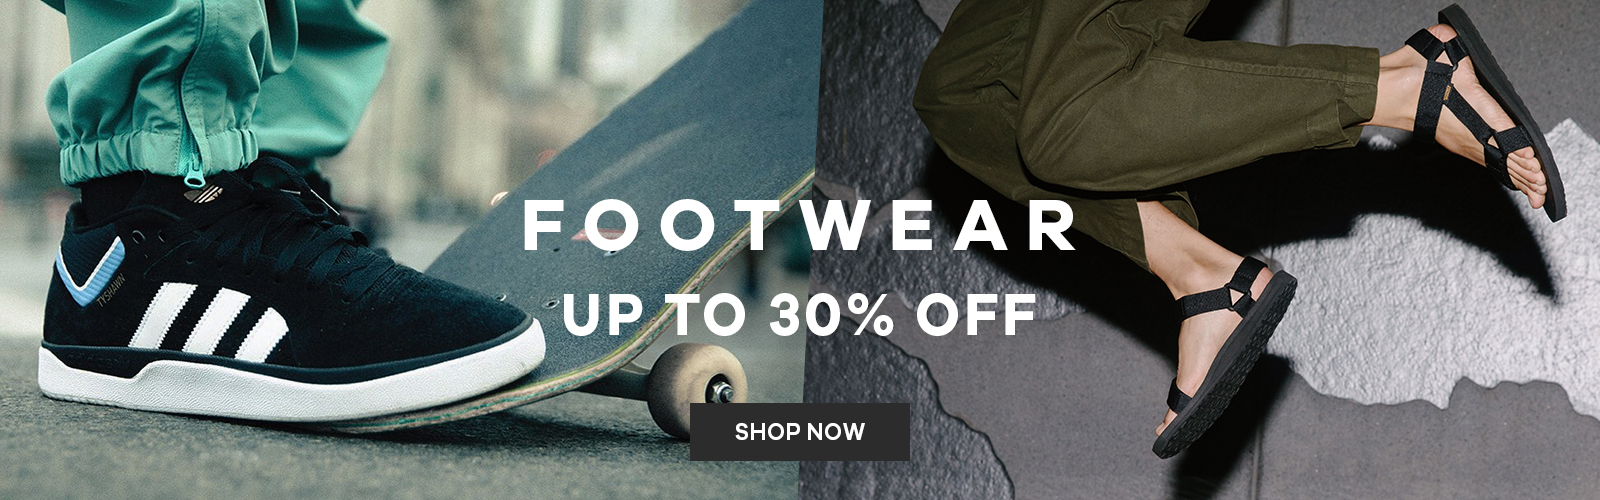 Footwear   Up to 30% off